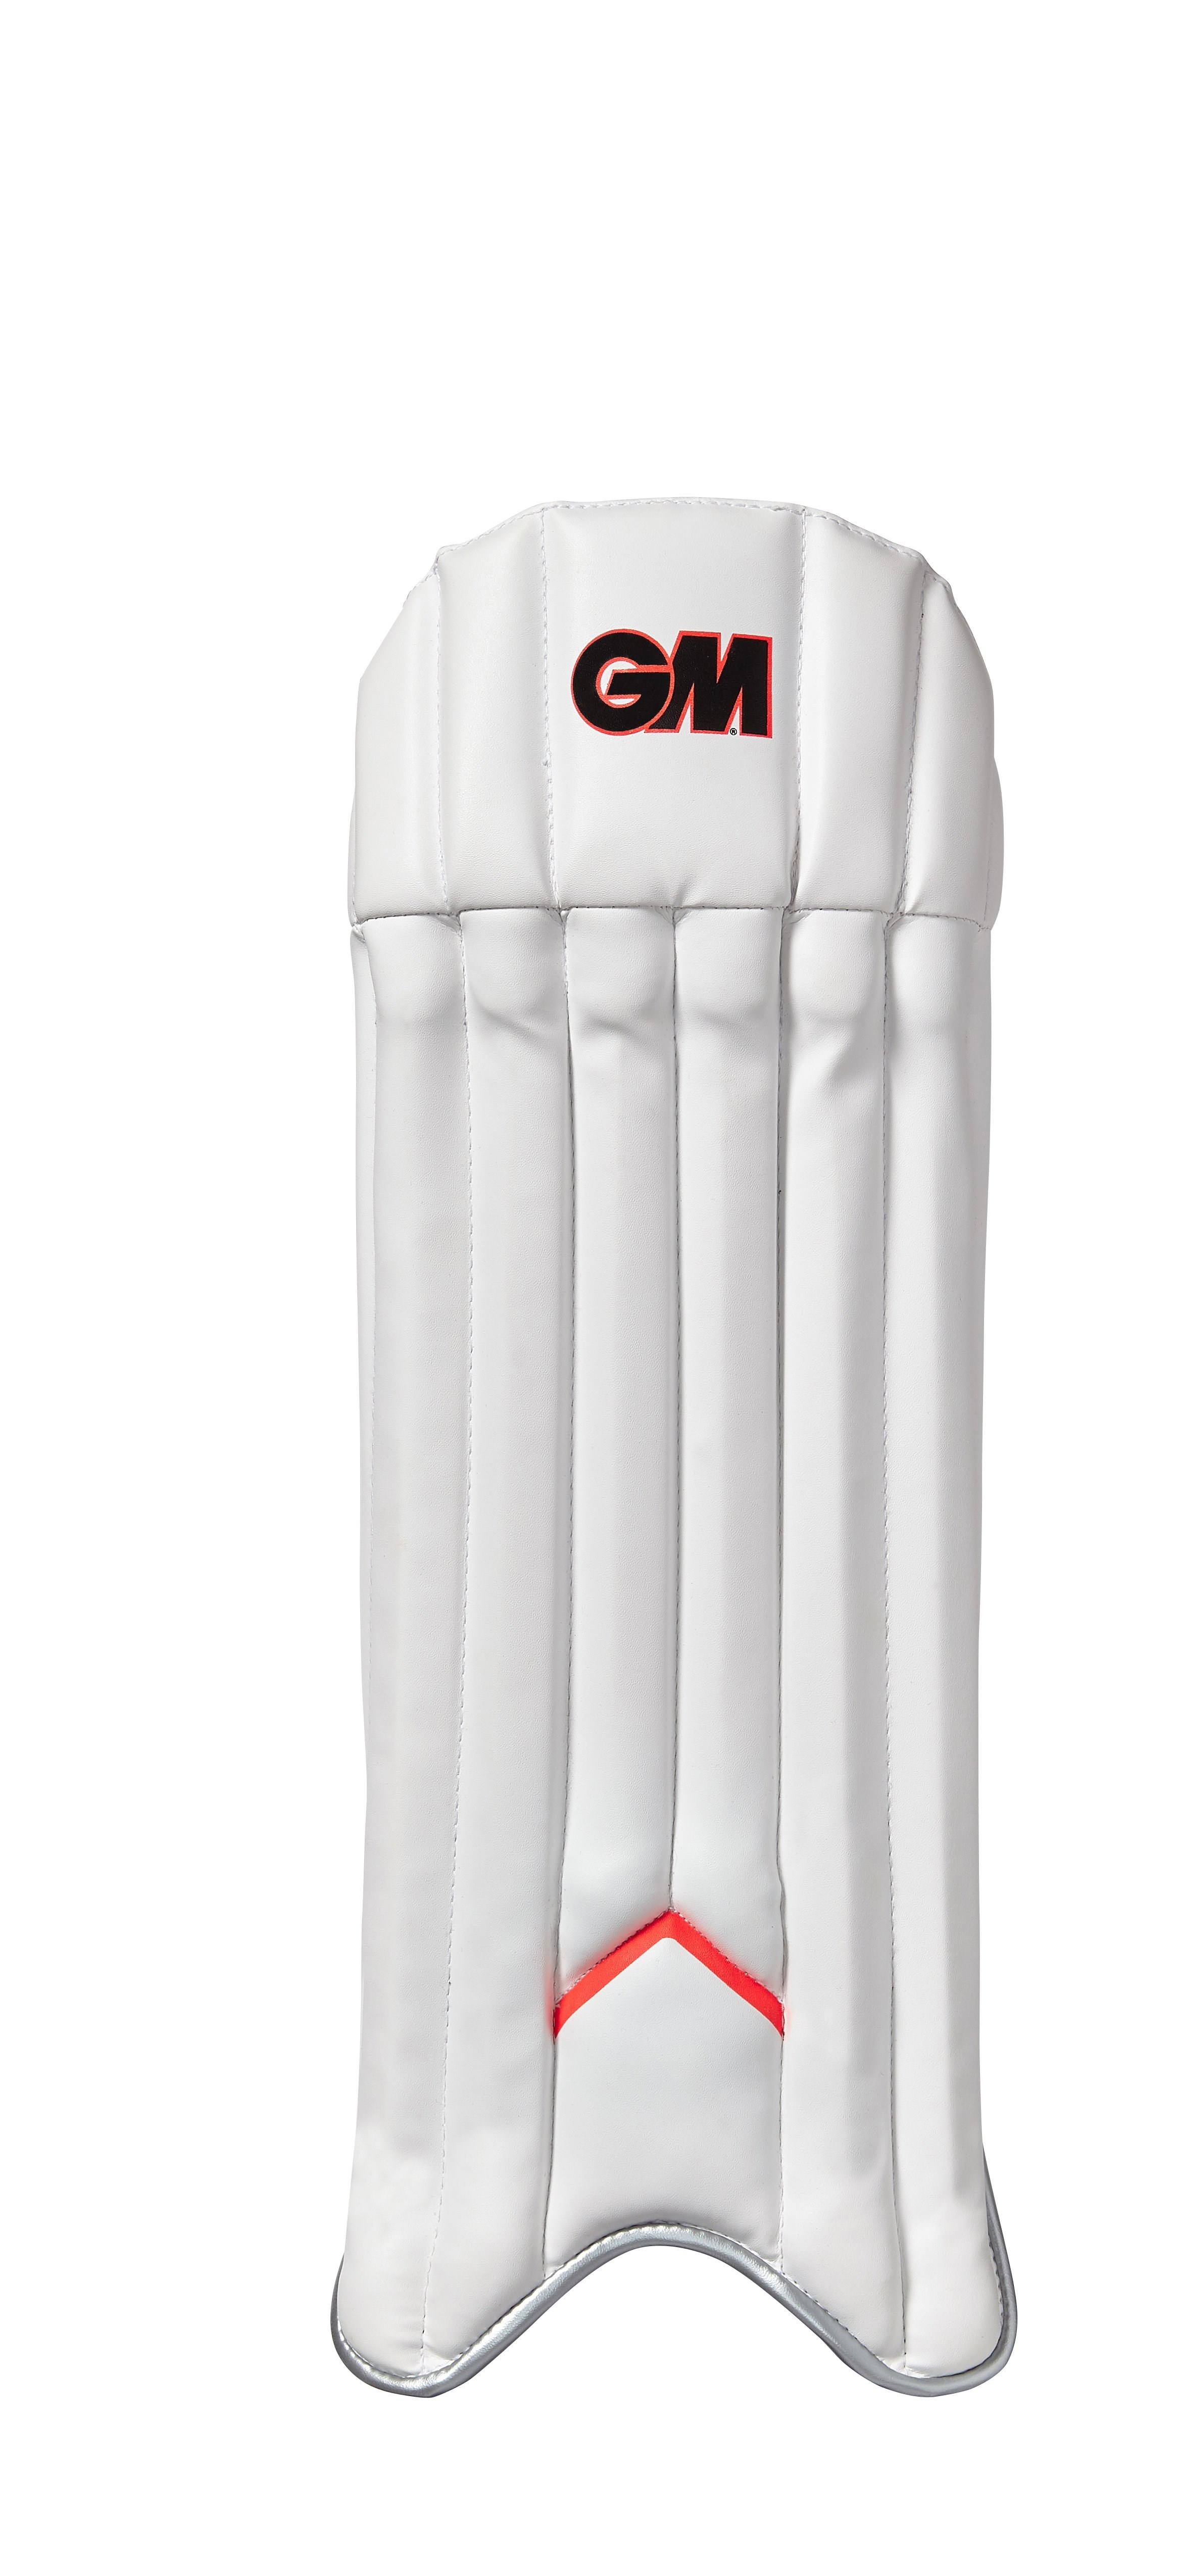 2017 Gunn and Moore 303 Wicket Keeping Pads